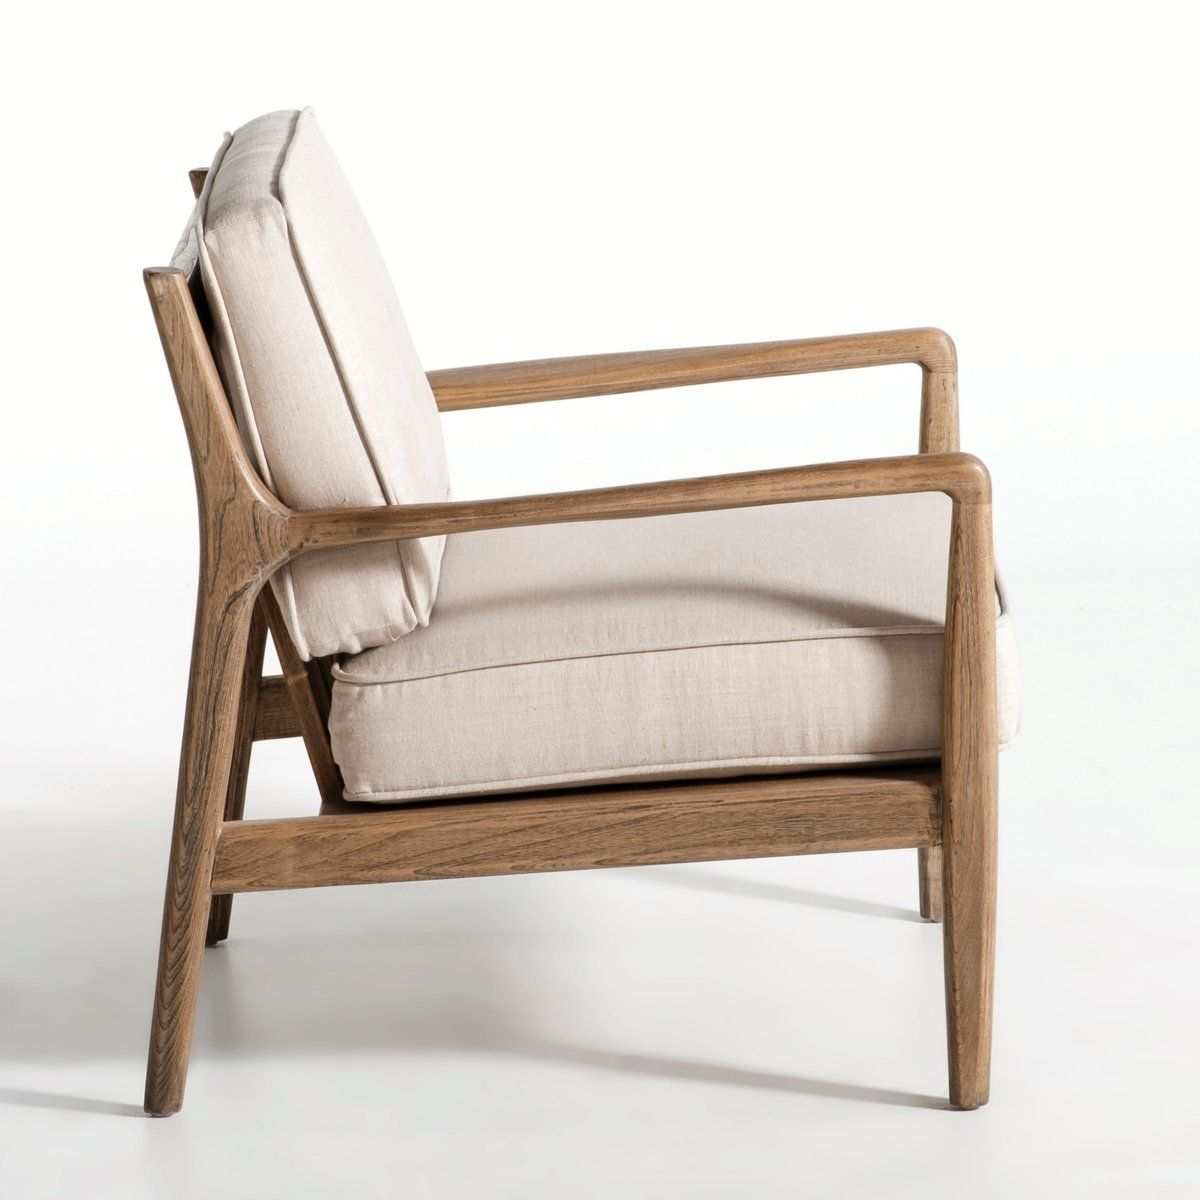 Have A Pretty Similar My Chair Is Designed By Knoll Wood Linen Fauteuil La Redoute Fauteuil Design Ampm Fauteuil